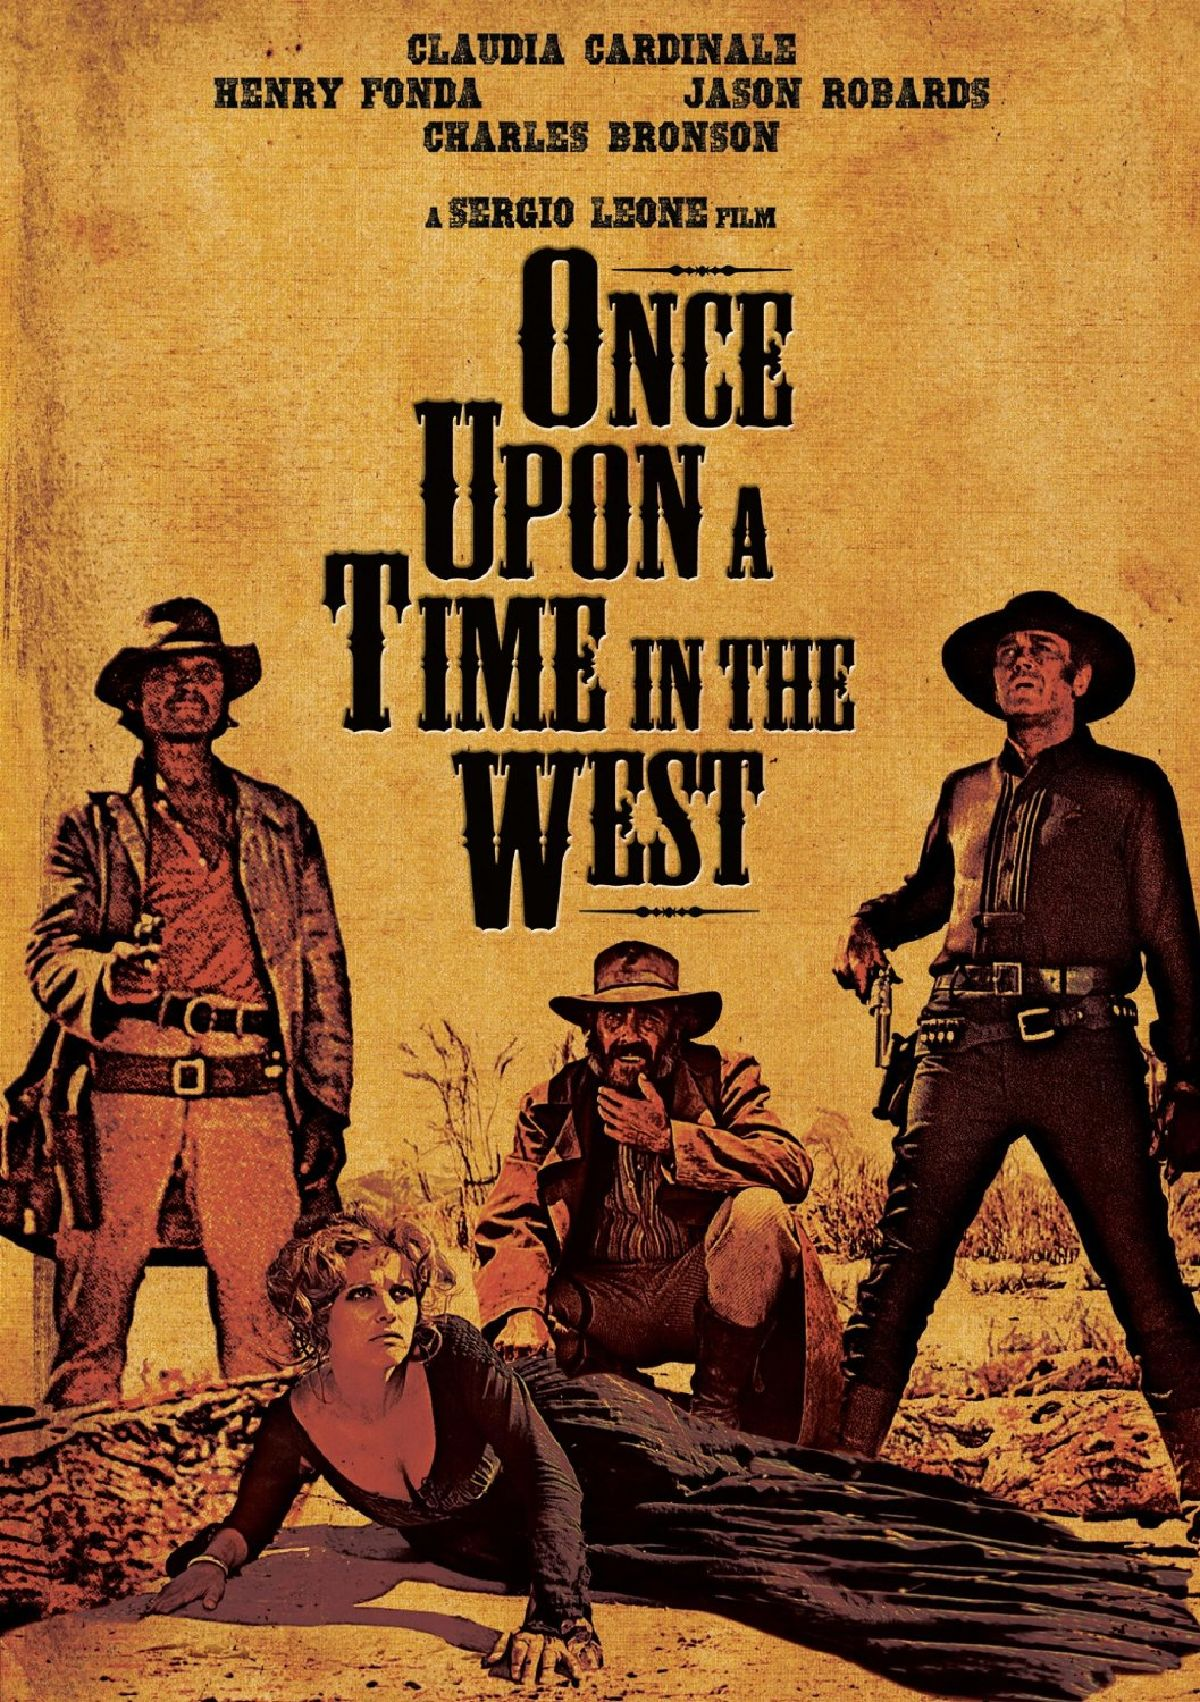 'Once Upon a Time in the West (C'era una volta il West)' movie poster